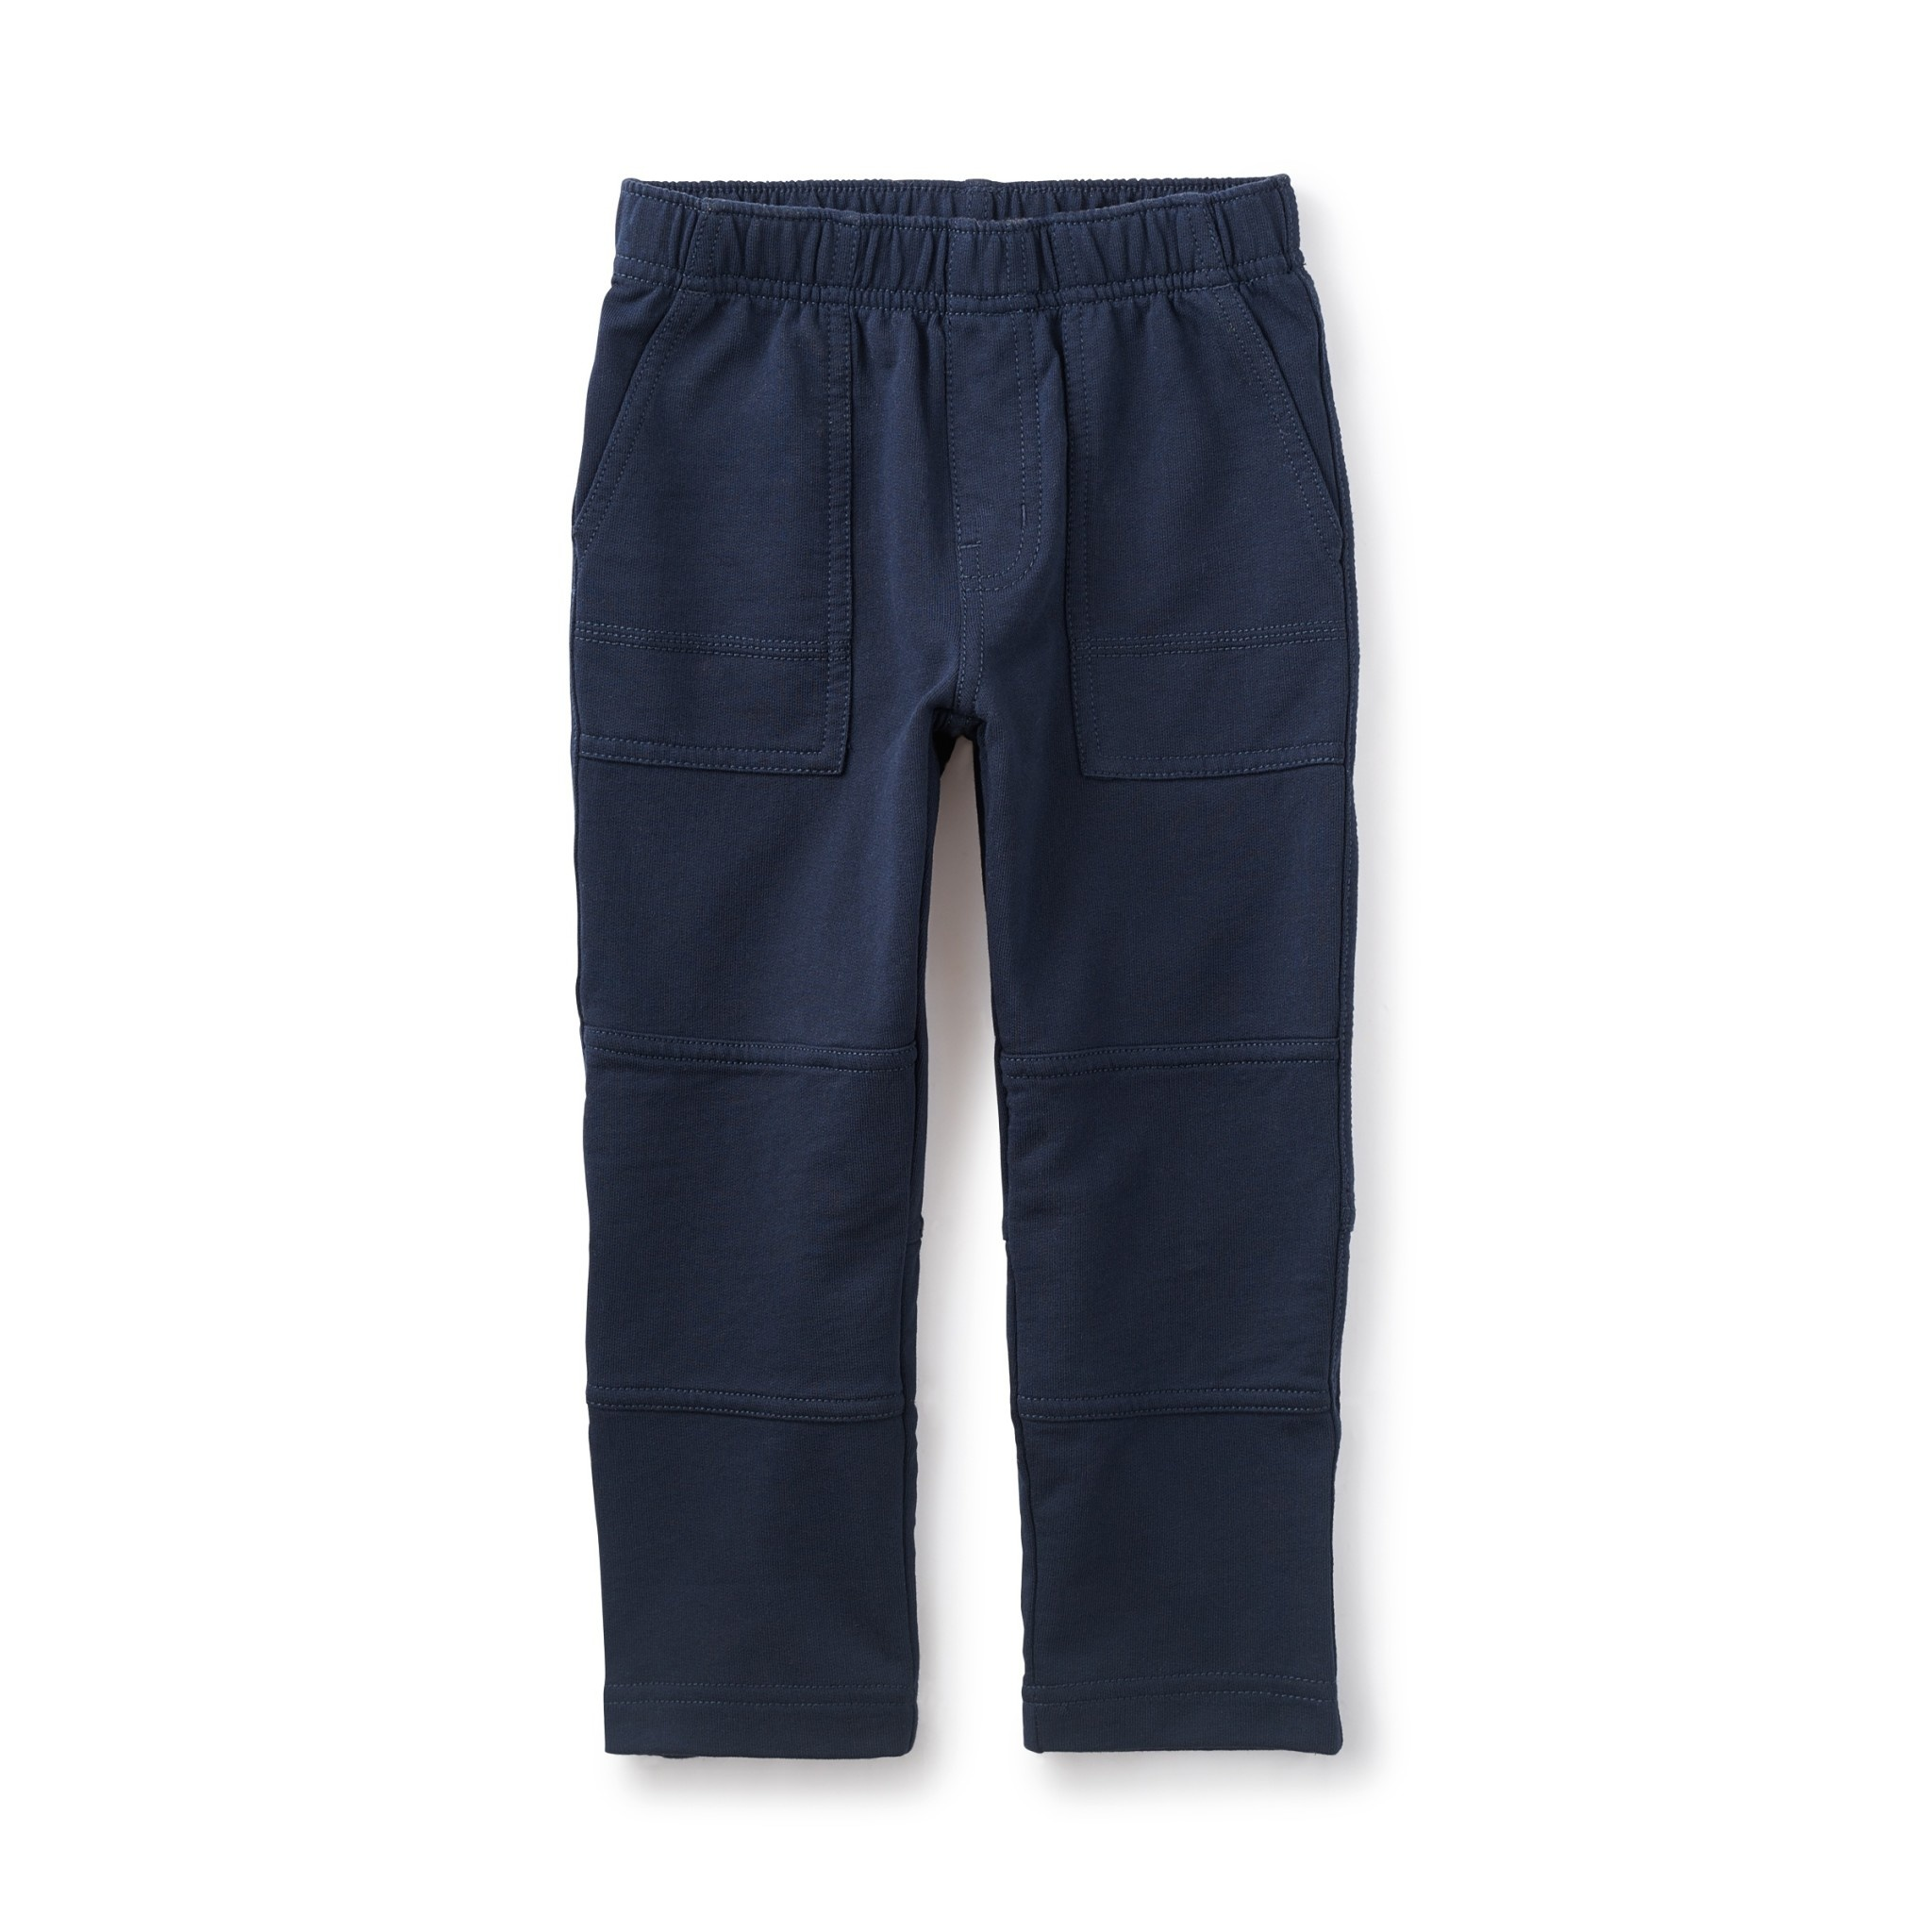 Tea Collection Heritage Blue Play Pants